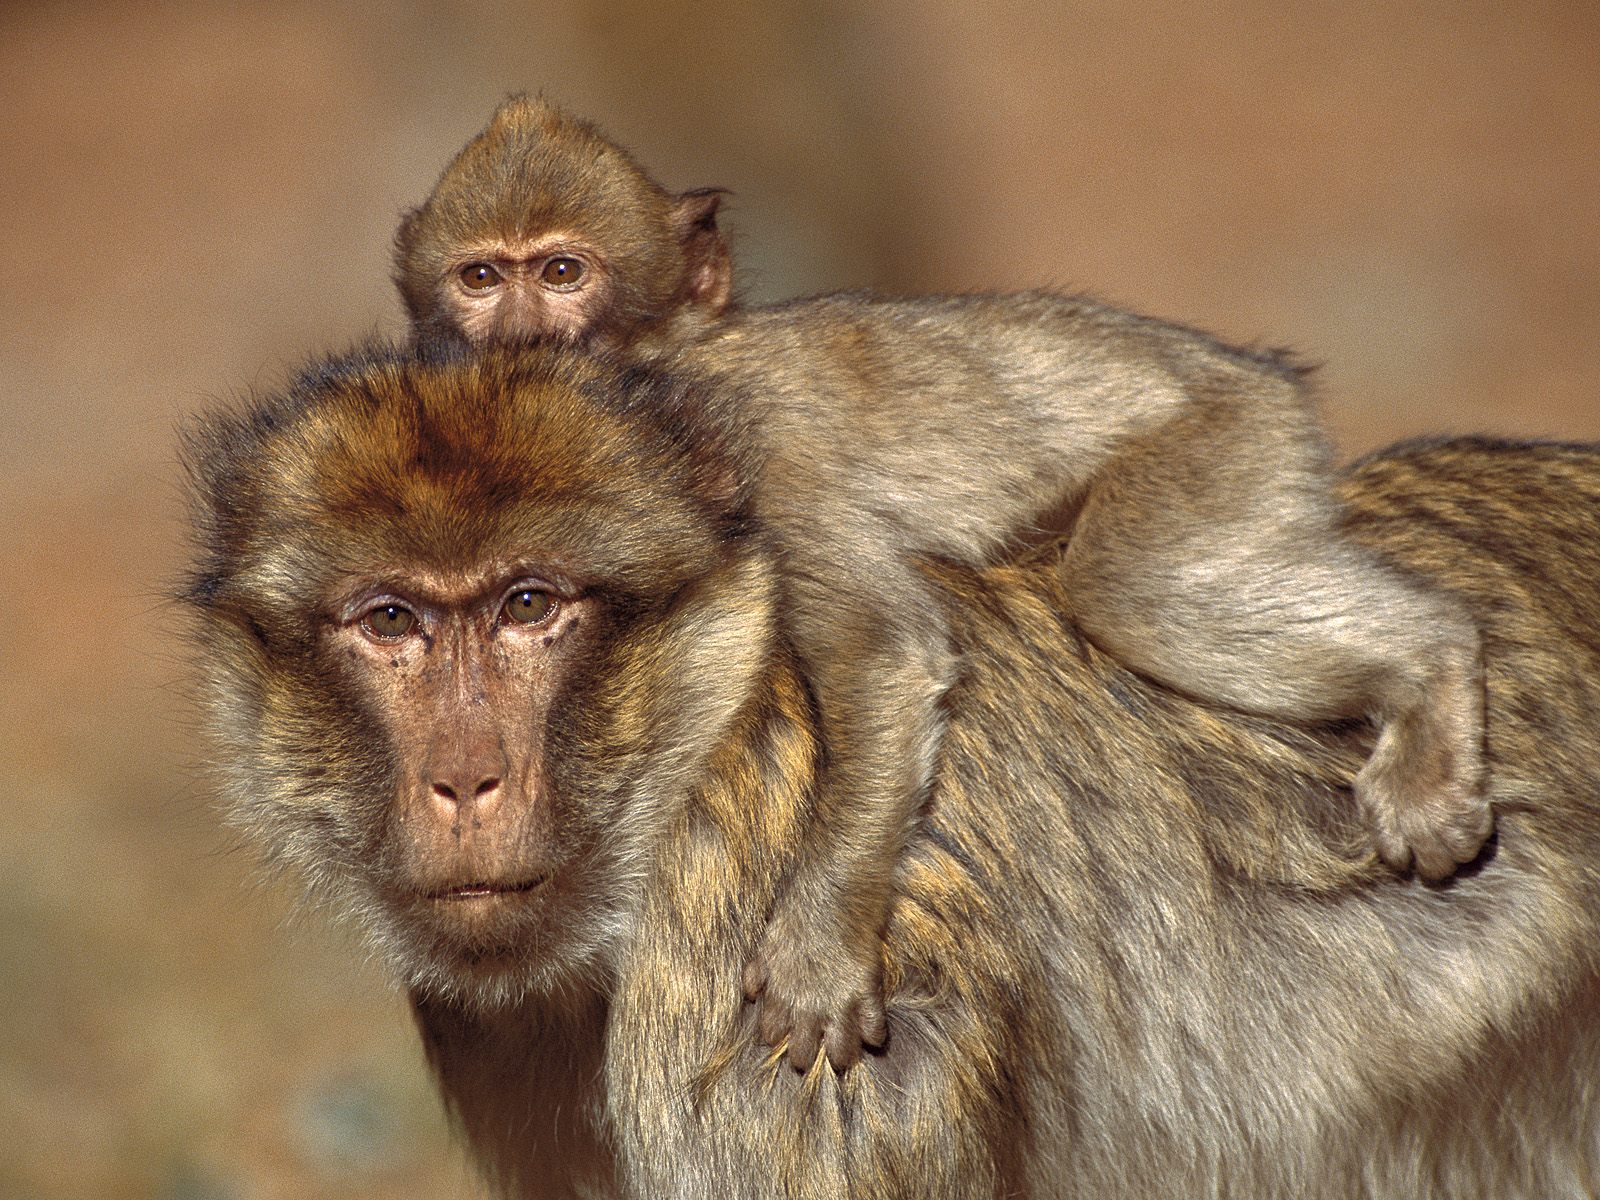 baby-monkey-with-his-mother-holding-her-on-back-pictures-1600x1200